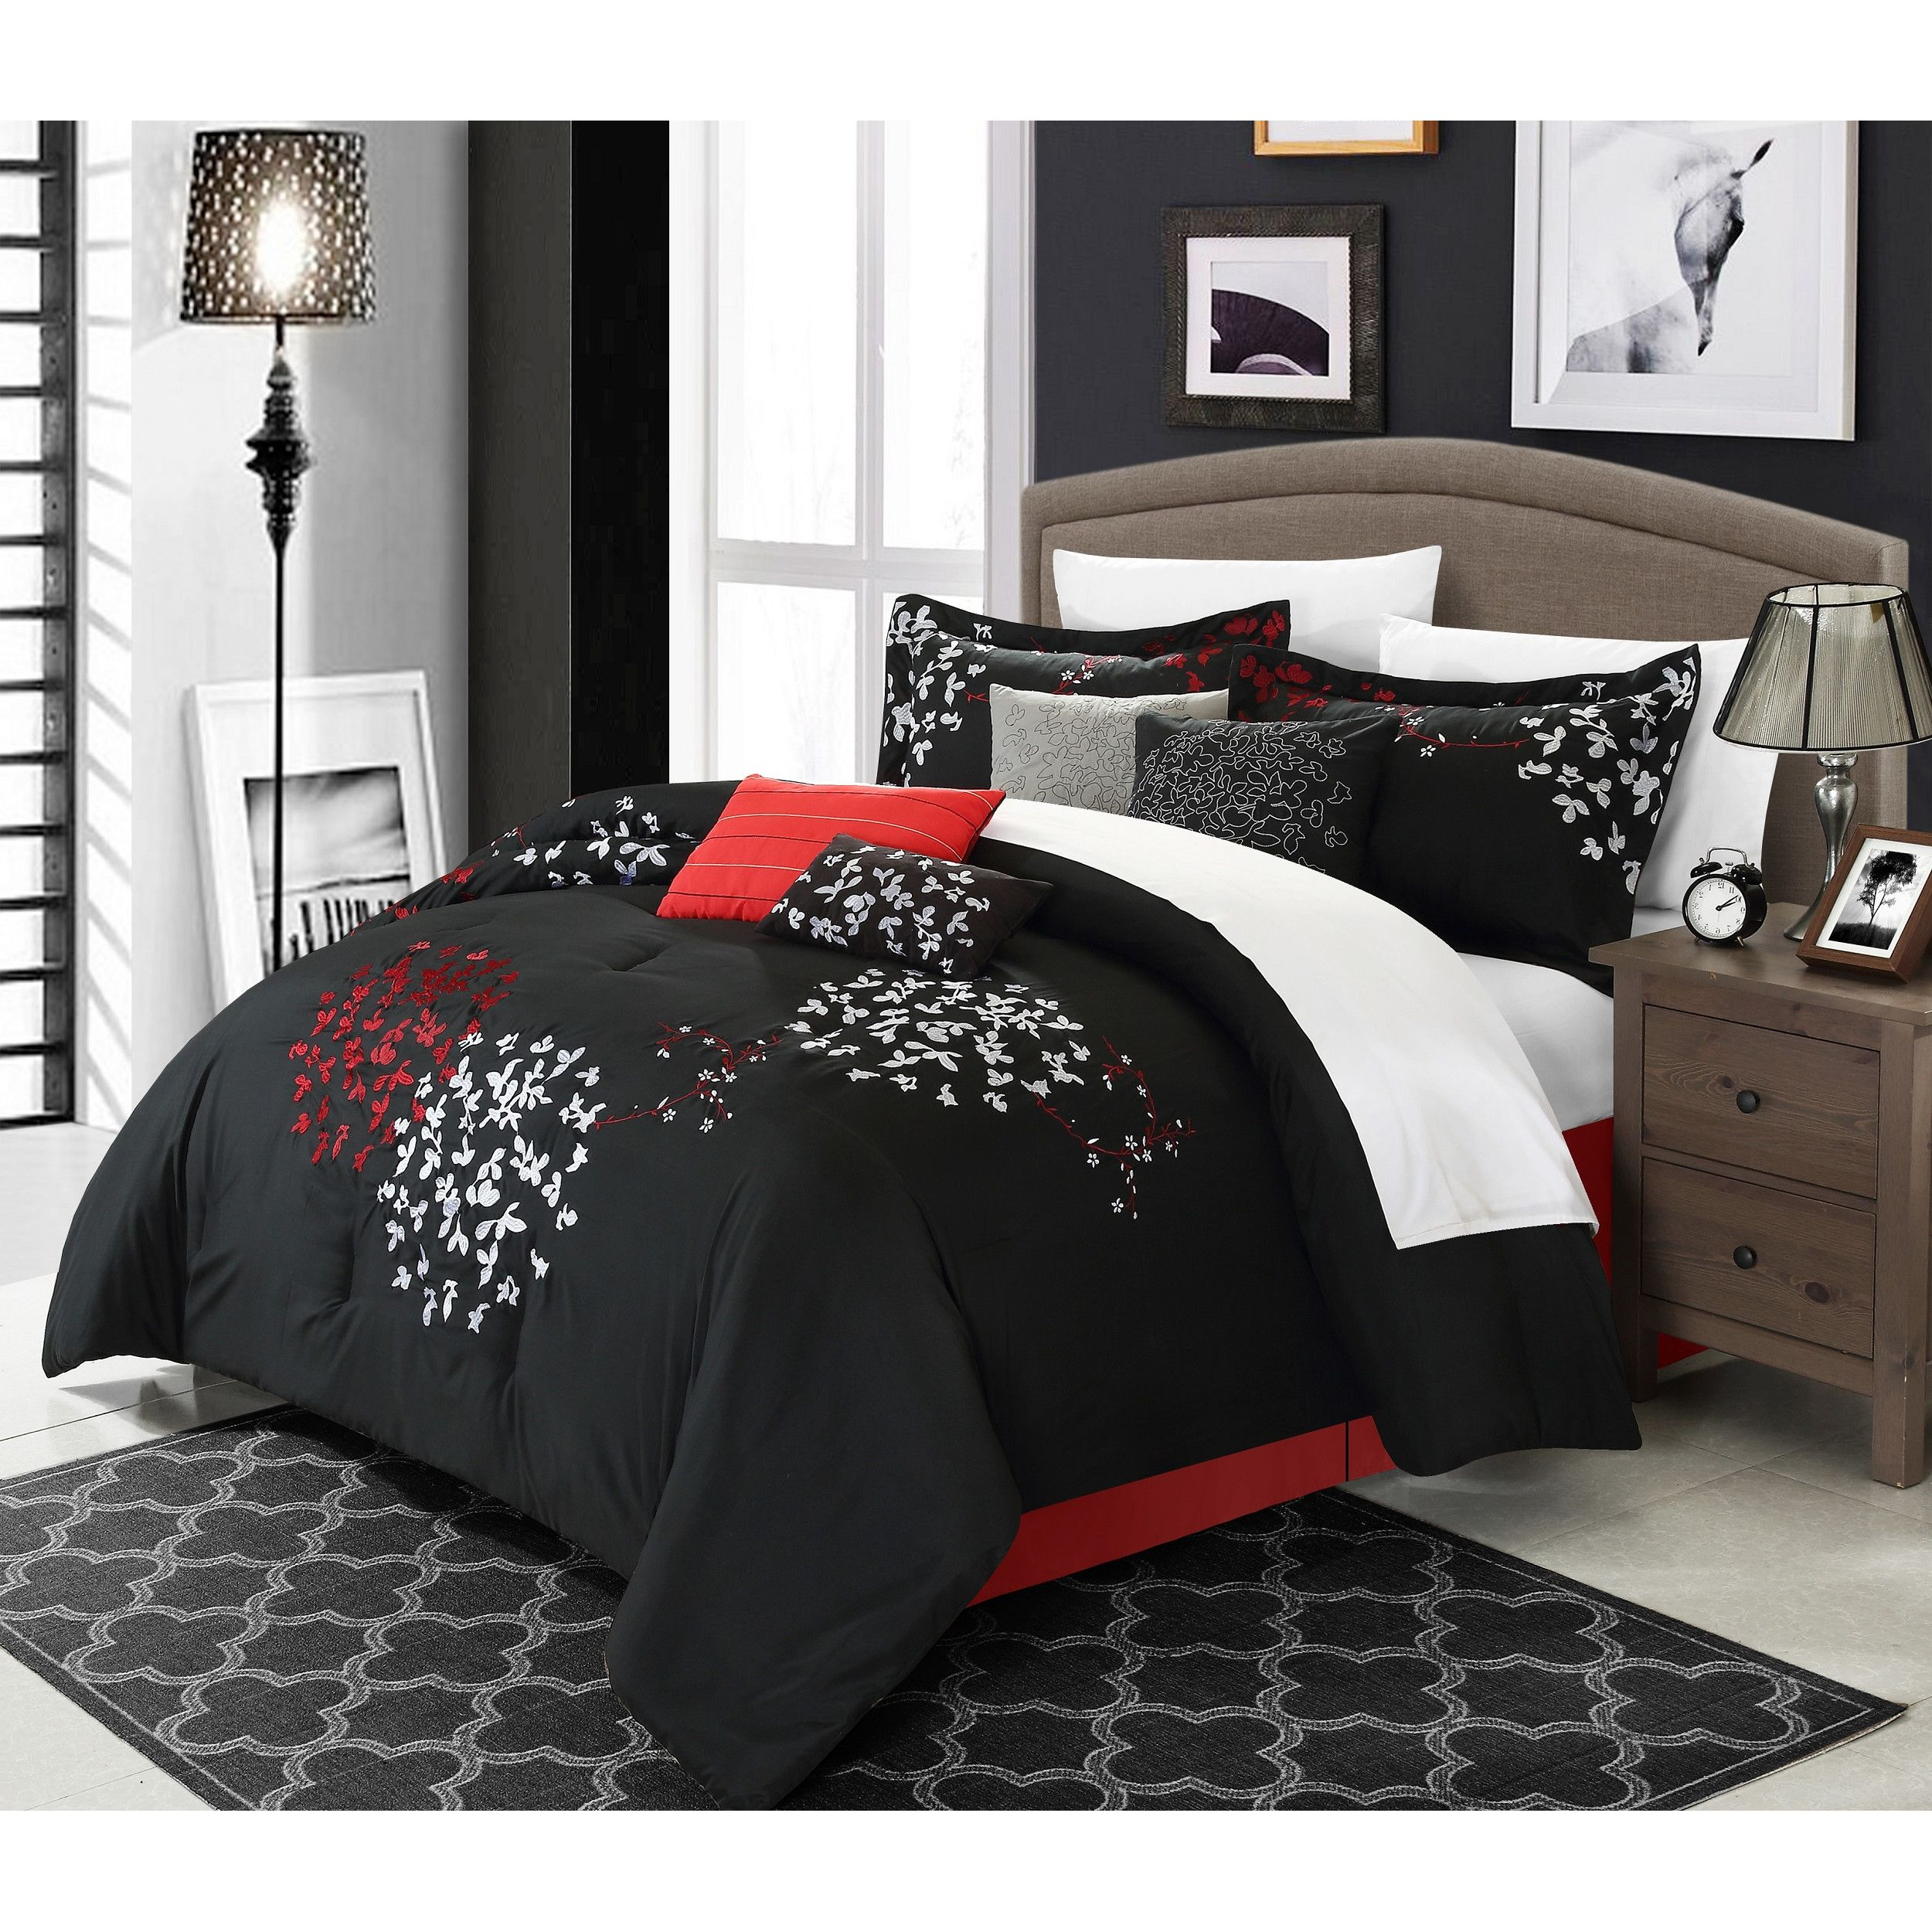 linen cozy using set pristine black bright pink bed contemporary comforter bedroom ixaxei sets bedding wa king full then red teen plus bedsize for